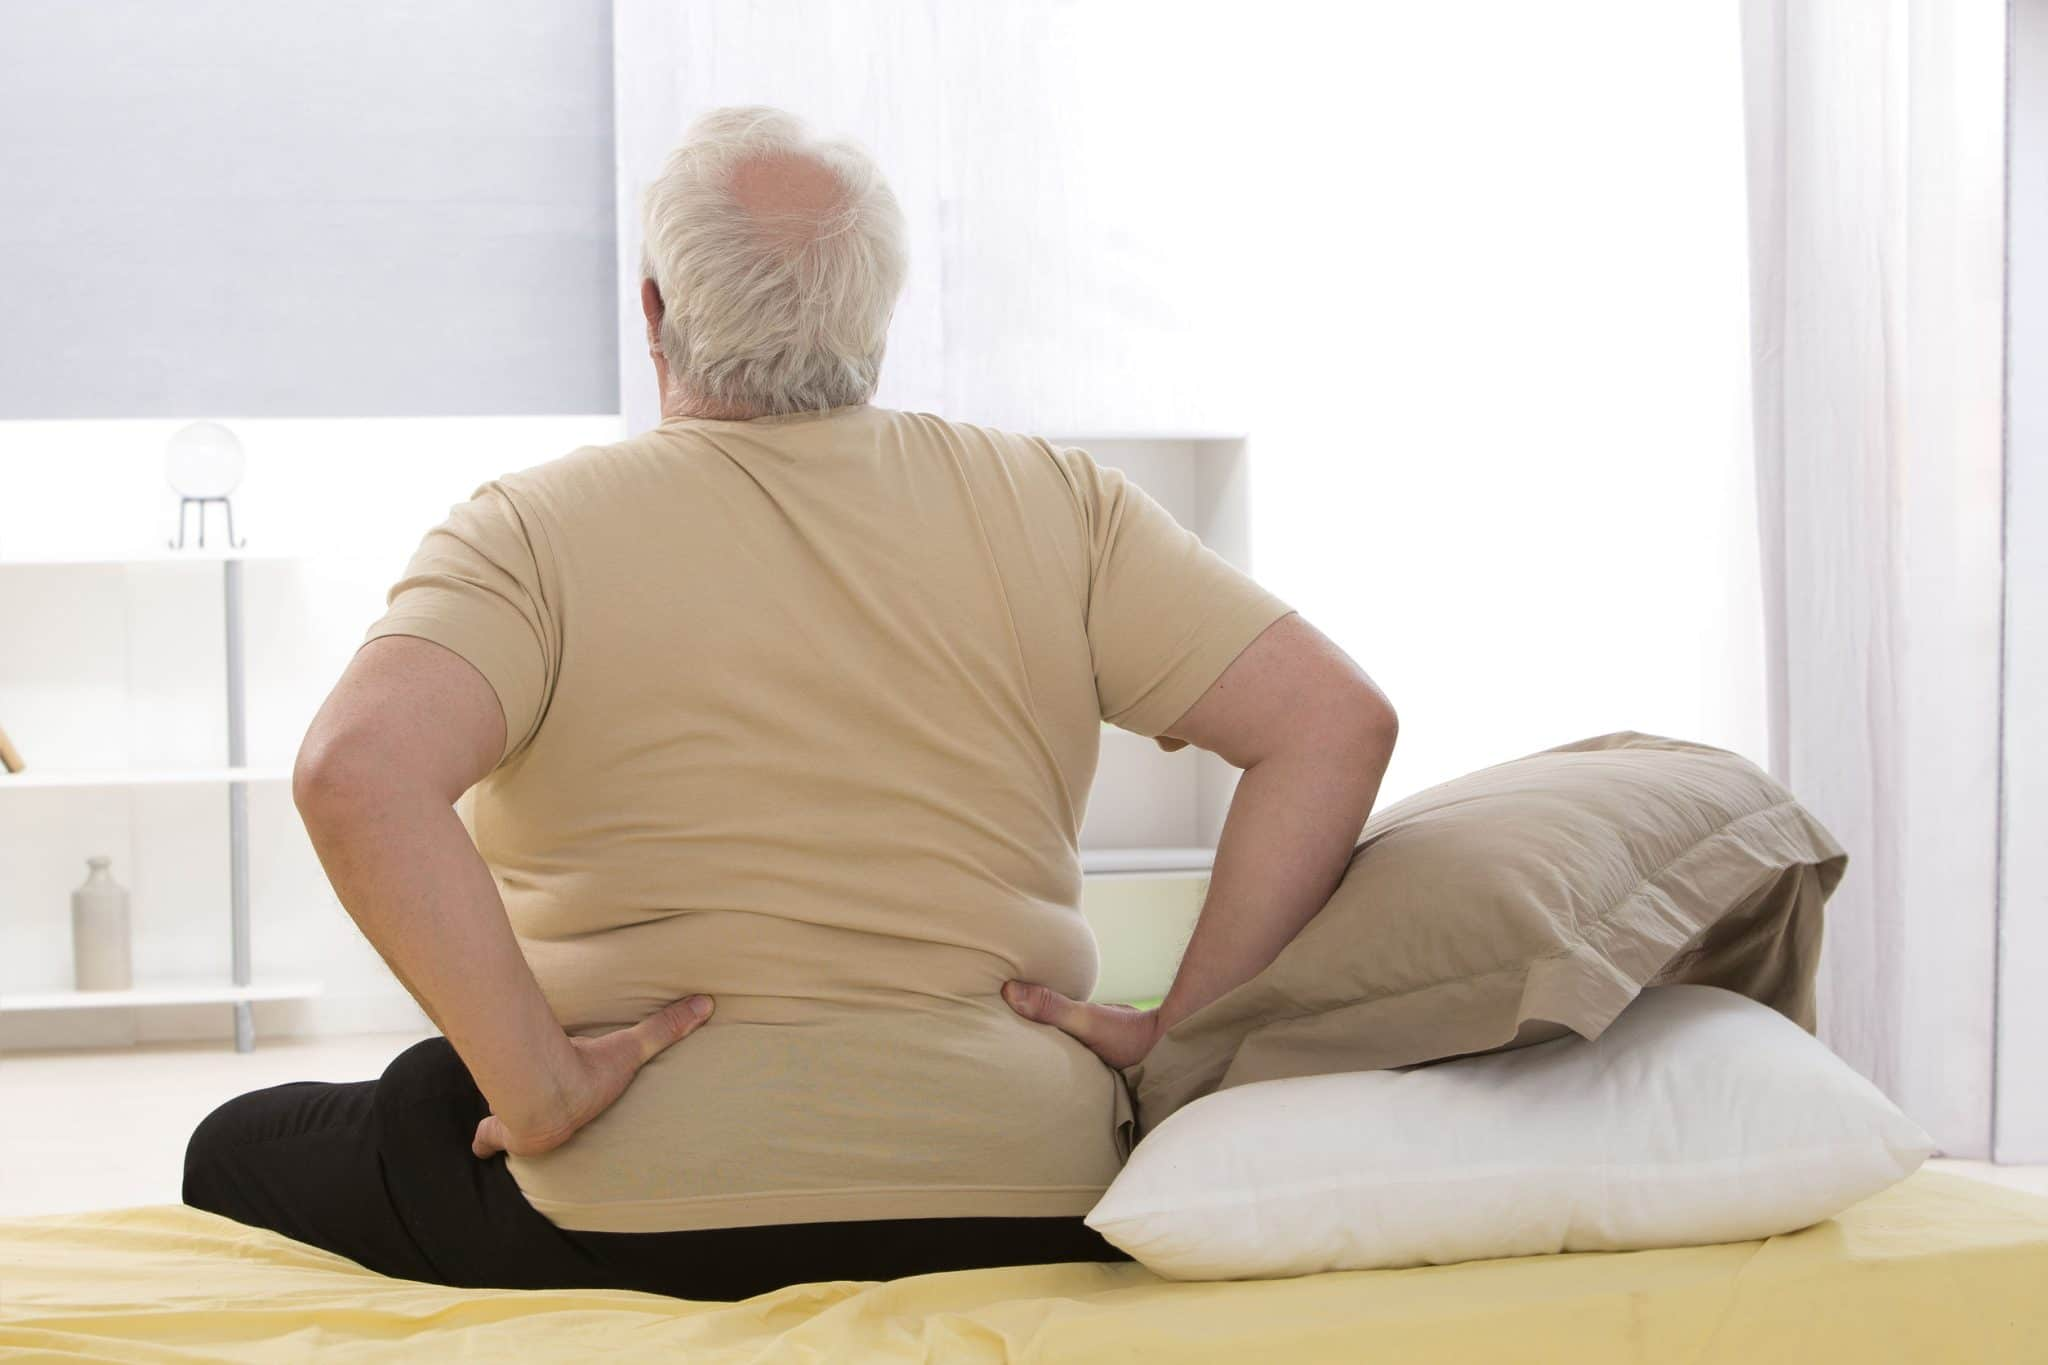 Senior man holding lower back while sitting on the edge of a bed